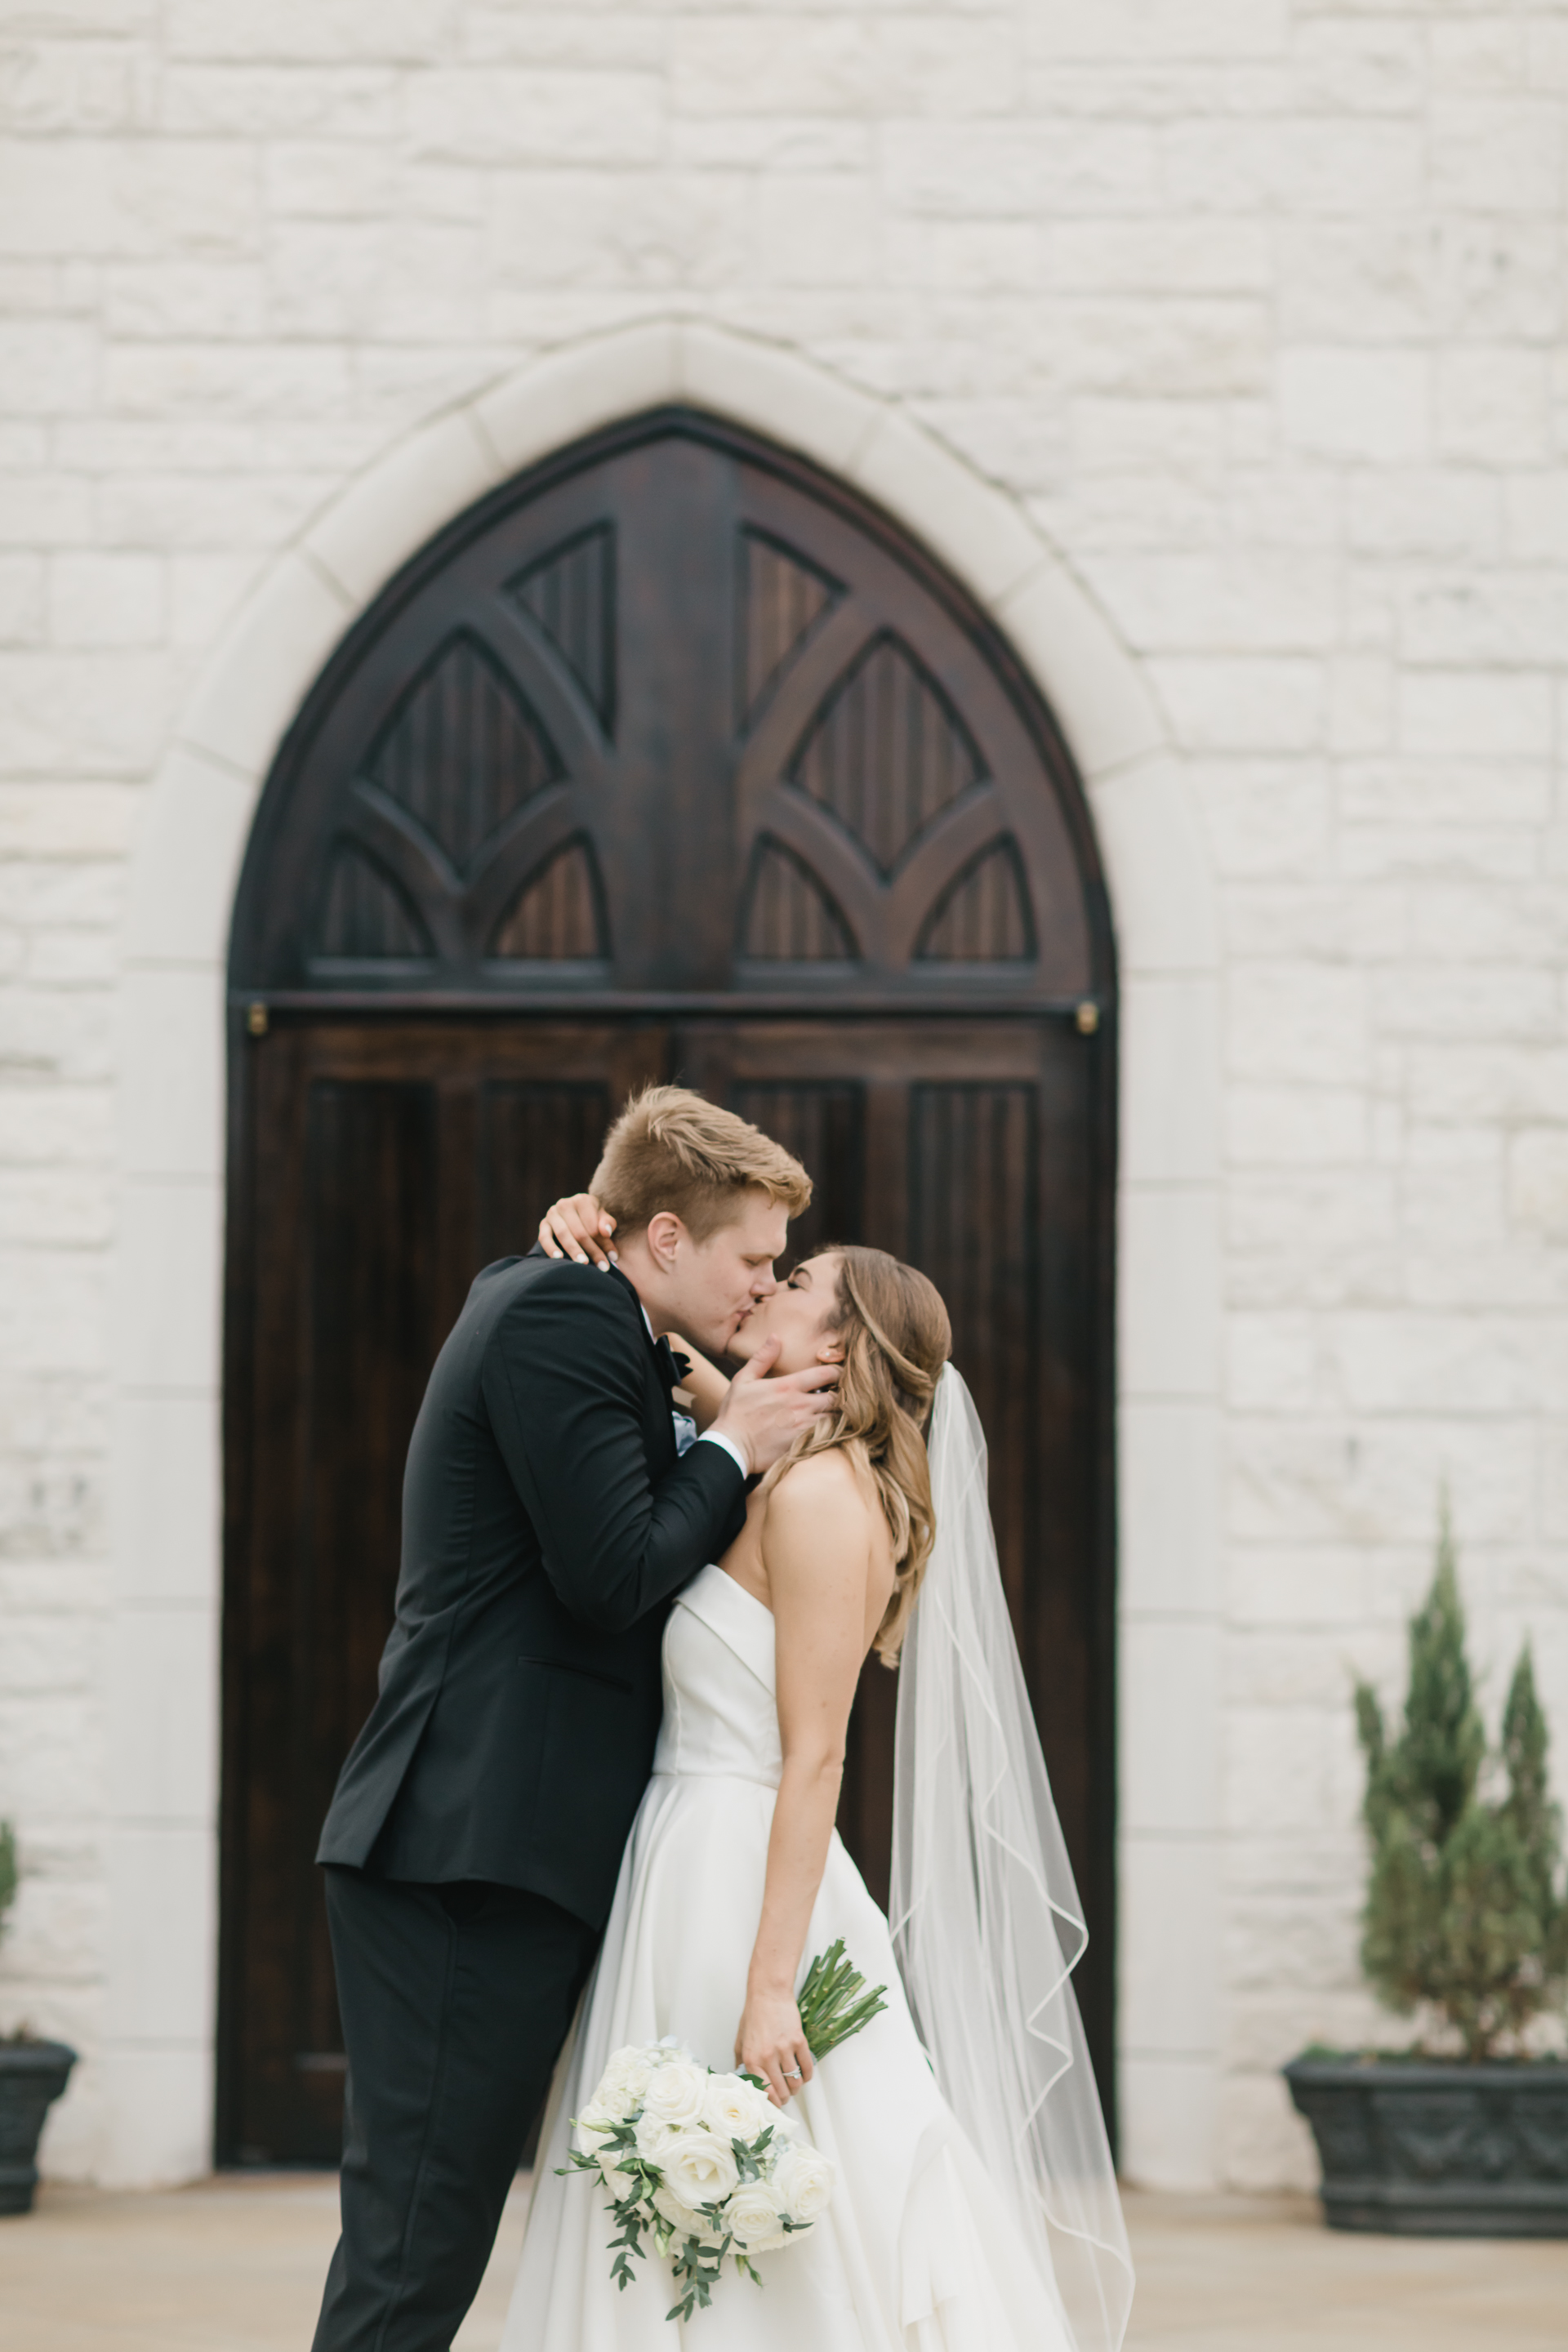 Gianna Keiko Atlanta NYC California Wedding Photographer_sneak peek-46.jpg